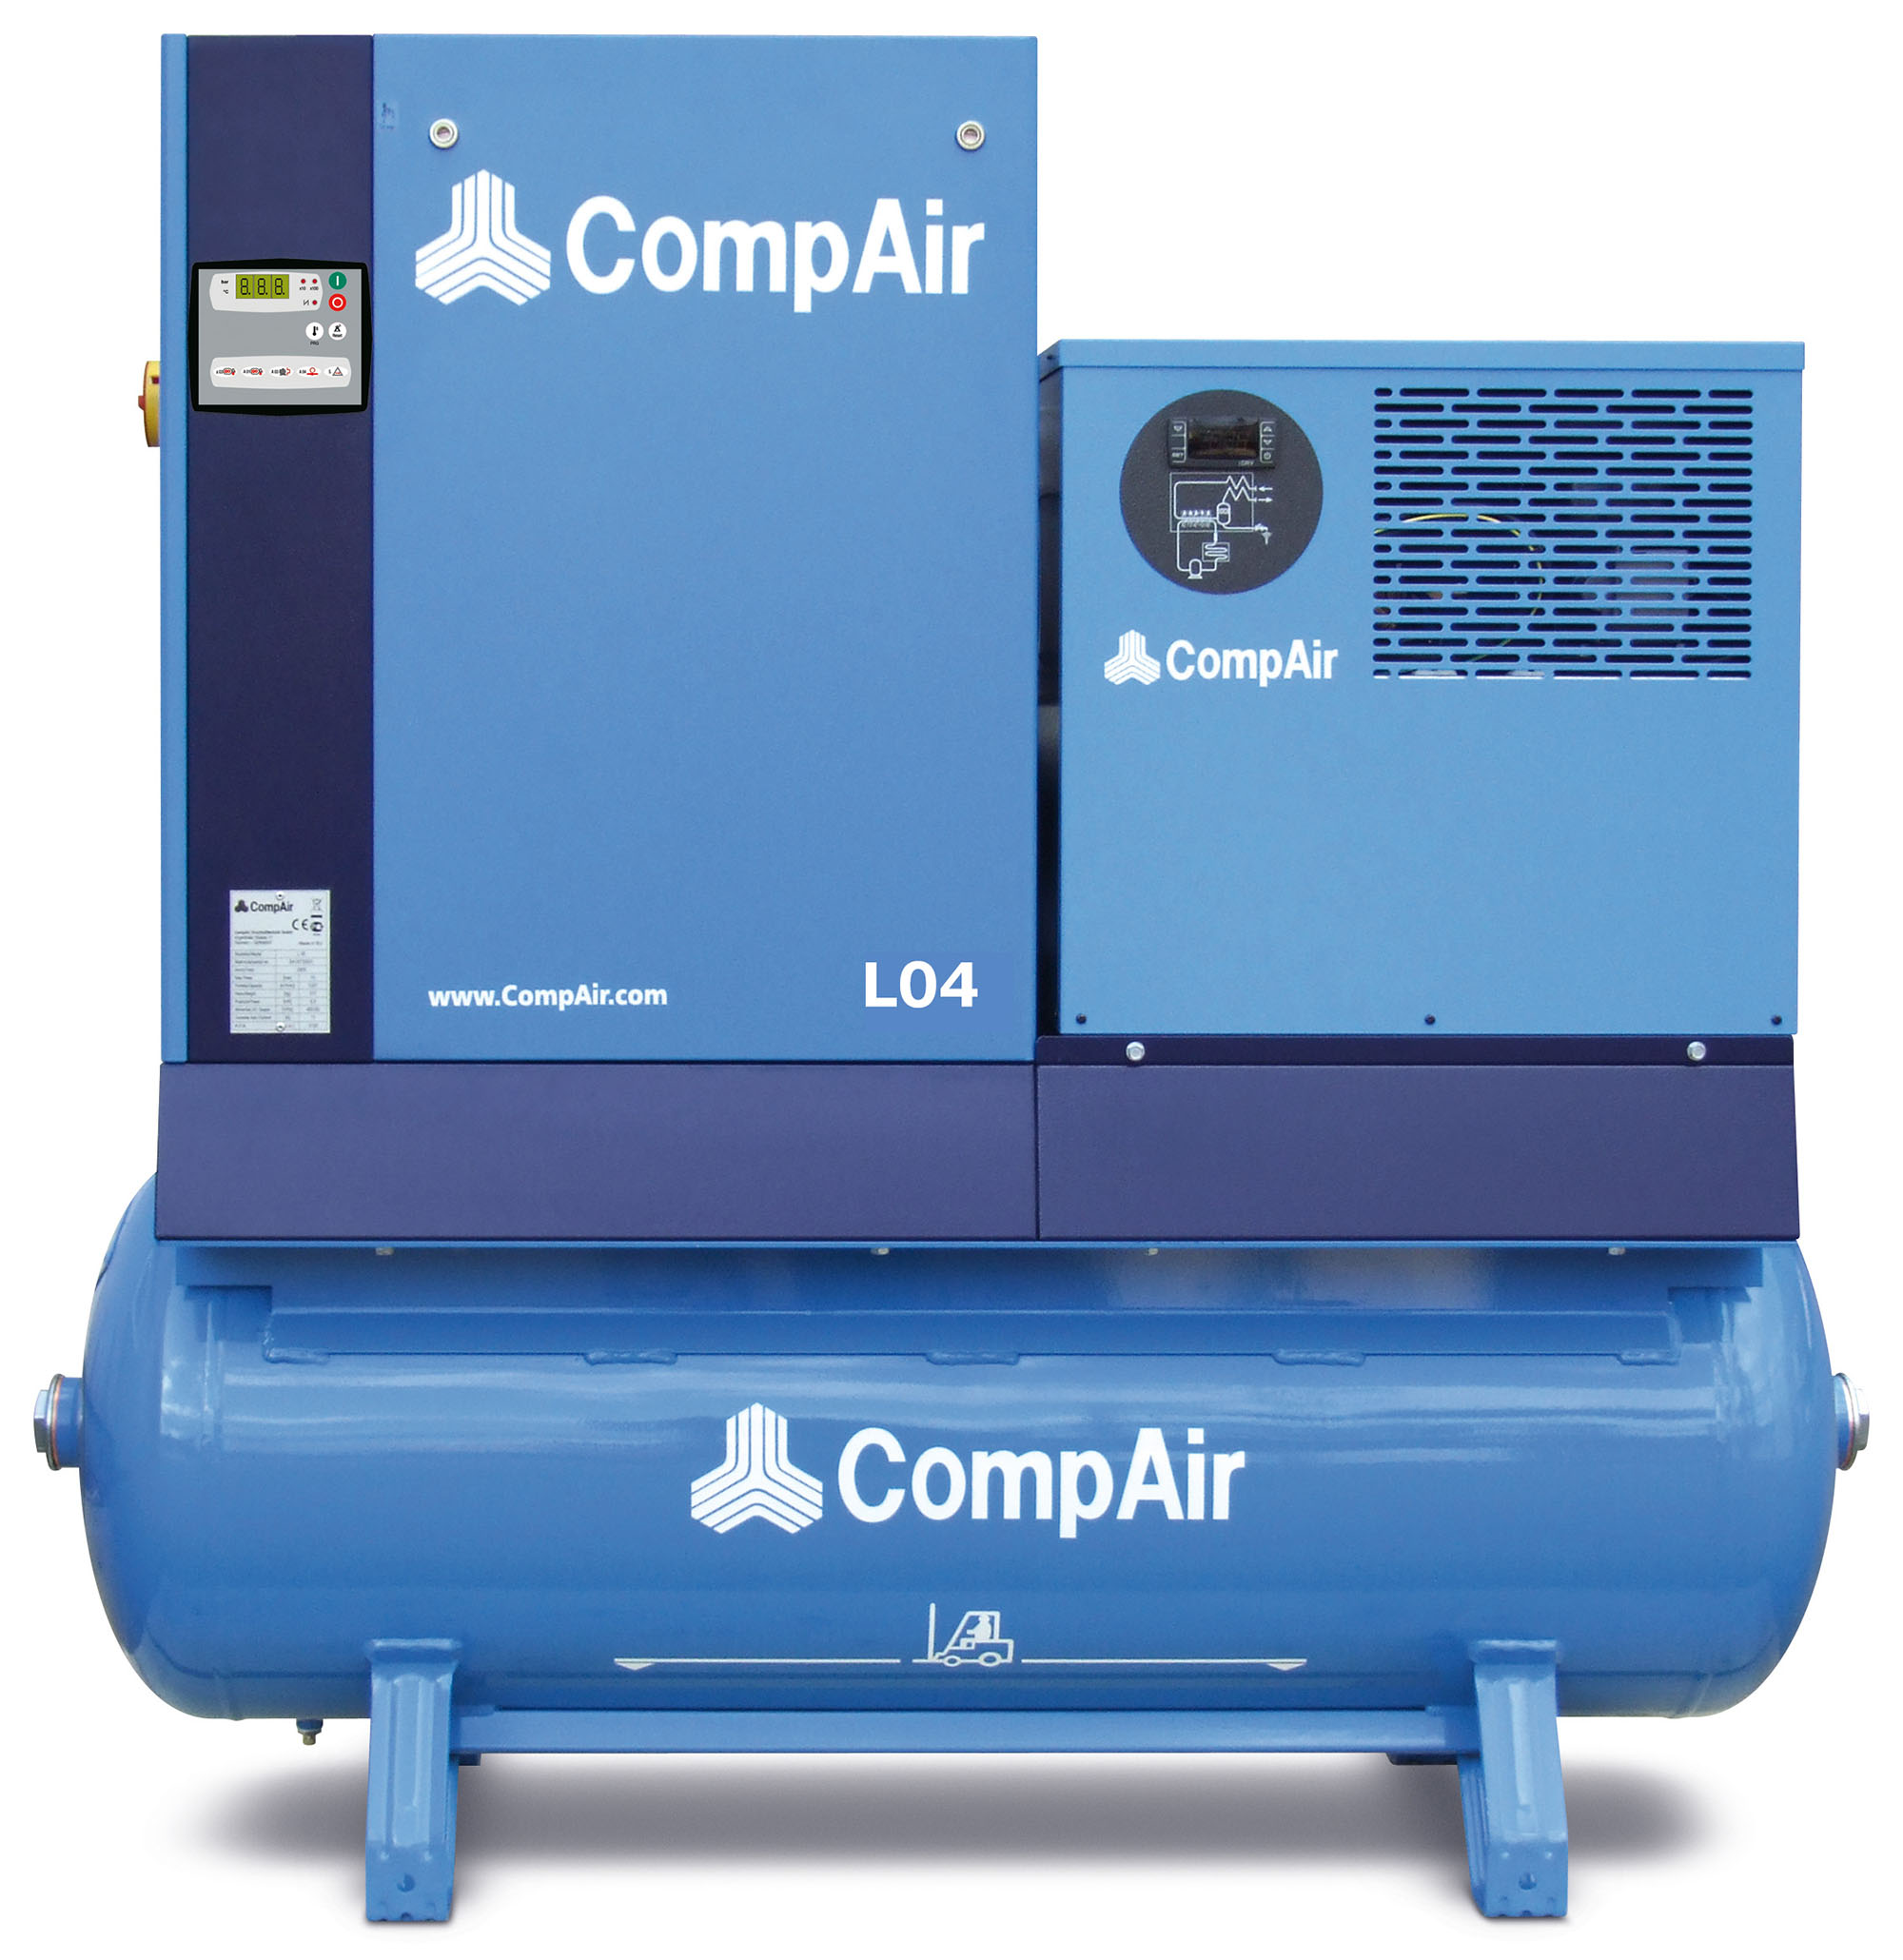 Midlands UK supplier of CompAir L04FS air compressor